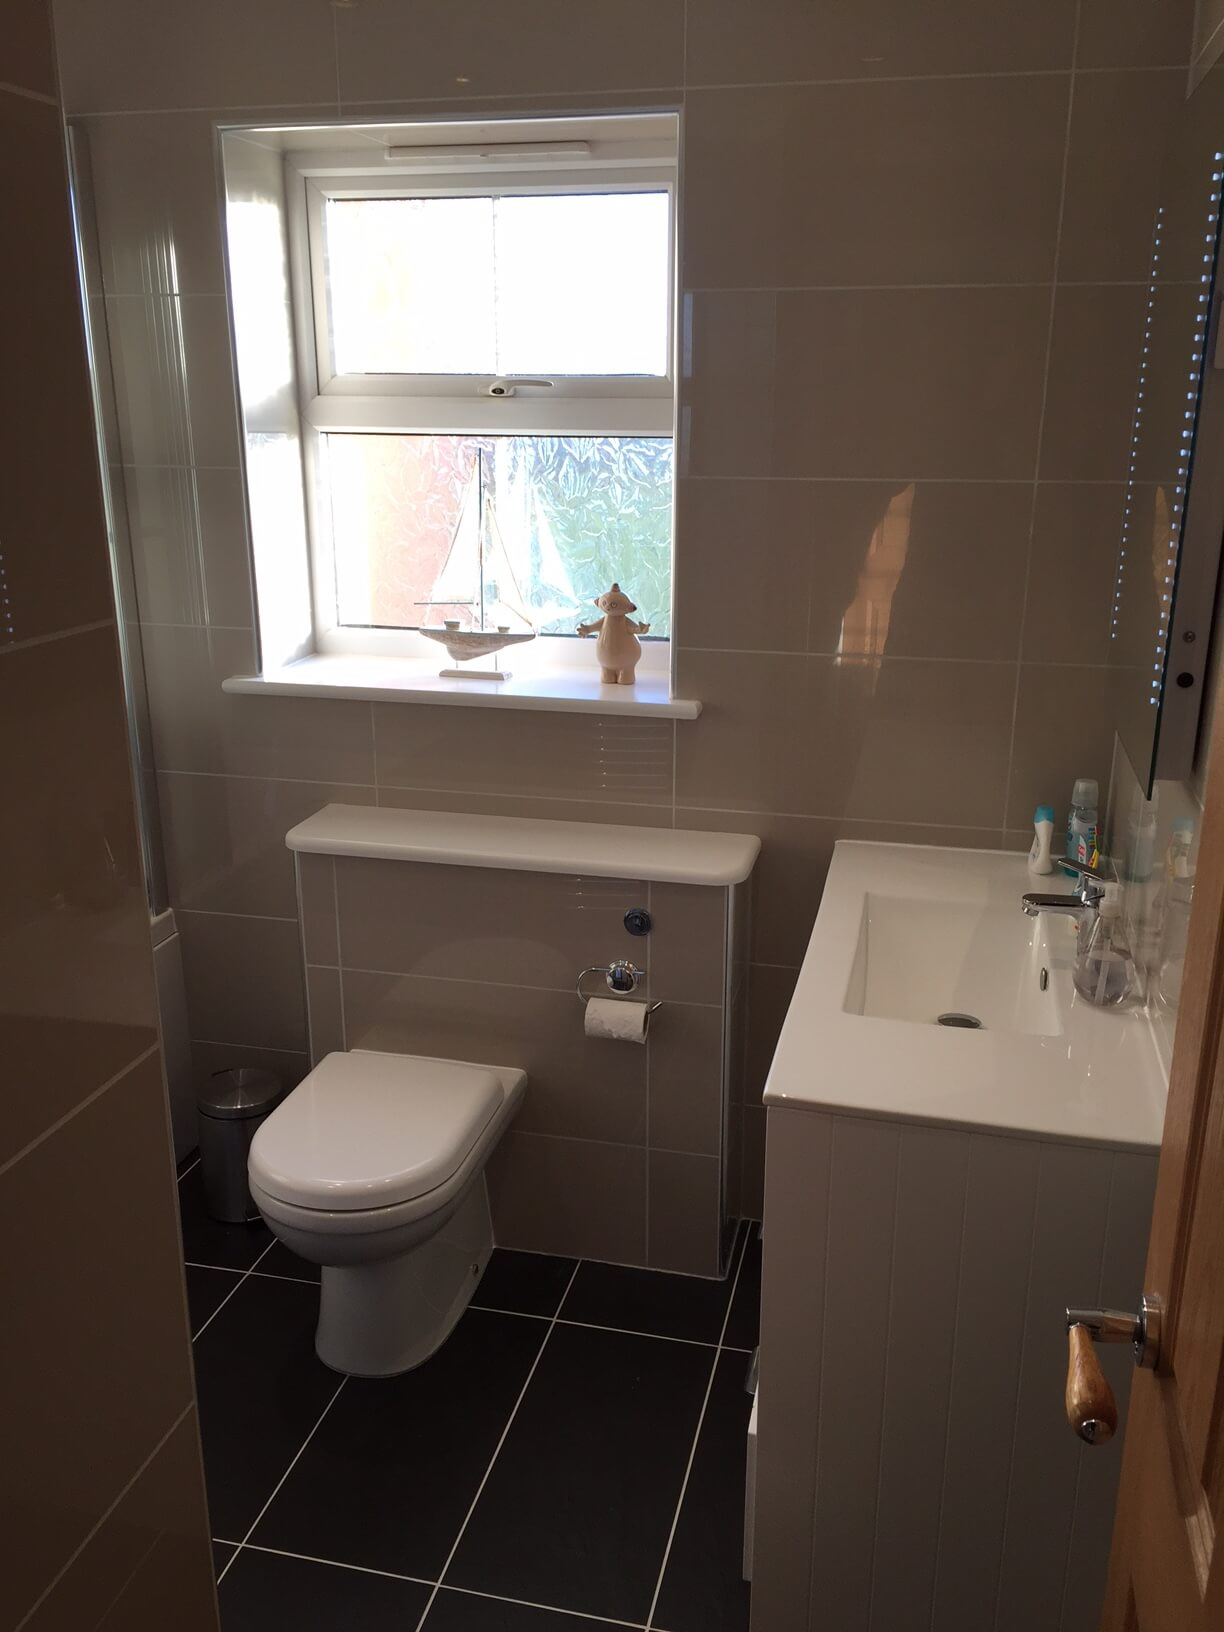 Finished Bathroom for Mr & Mrs S of Northam